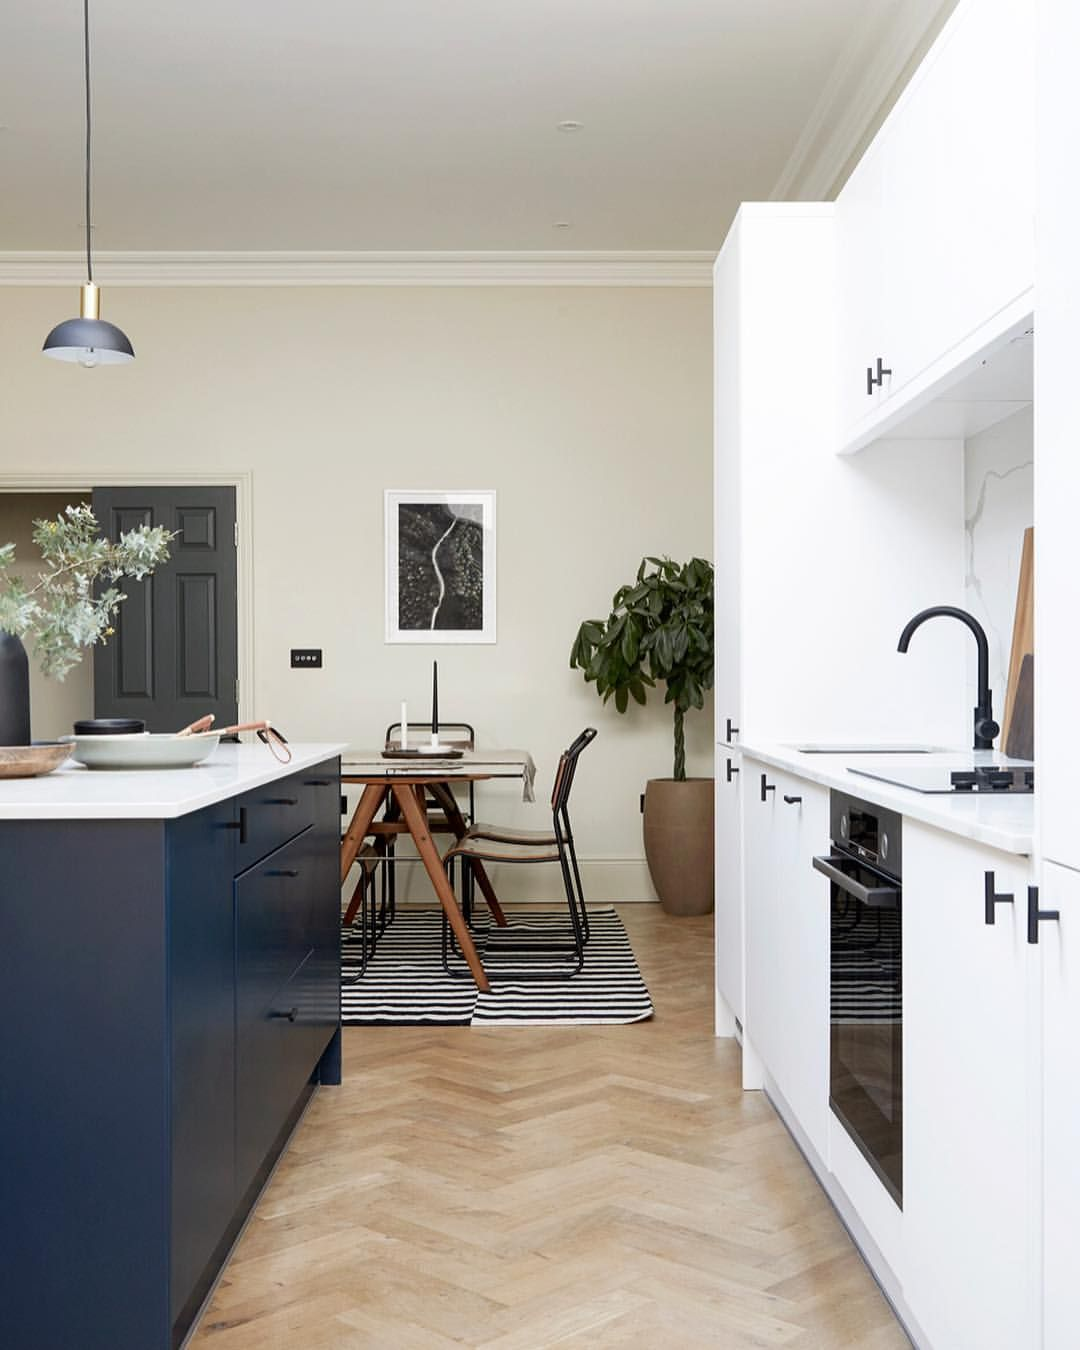 Get Asked About The Ideal Distance Between An Island And Kitchen Run A Lot A Metre Is Pretty Good Stylish Kitchen Design Open Plan Apartment Apartment Kitchen